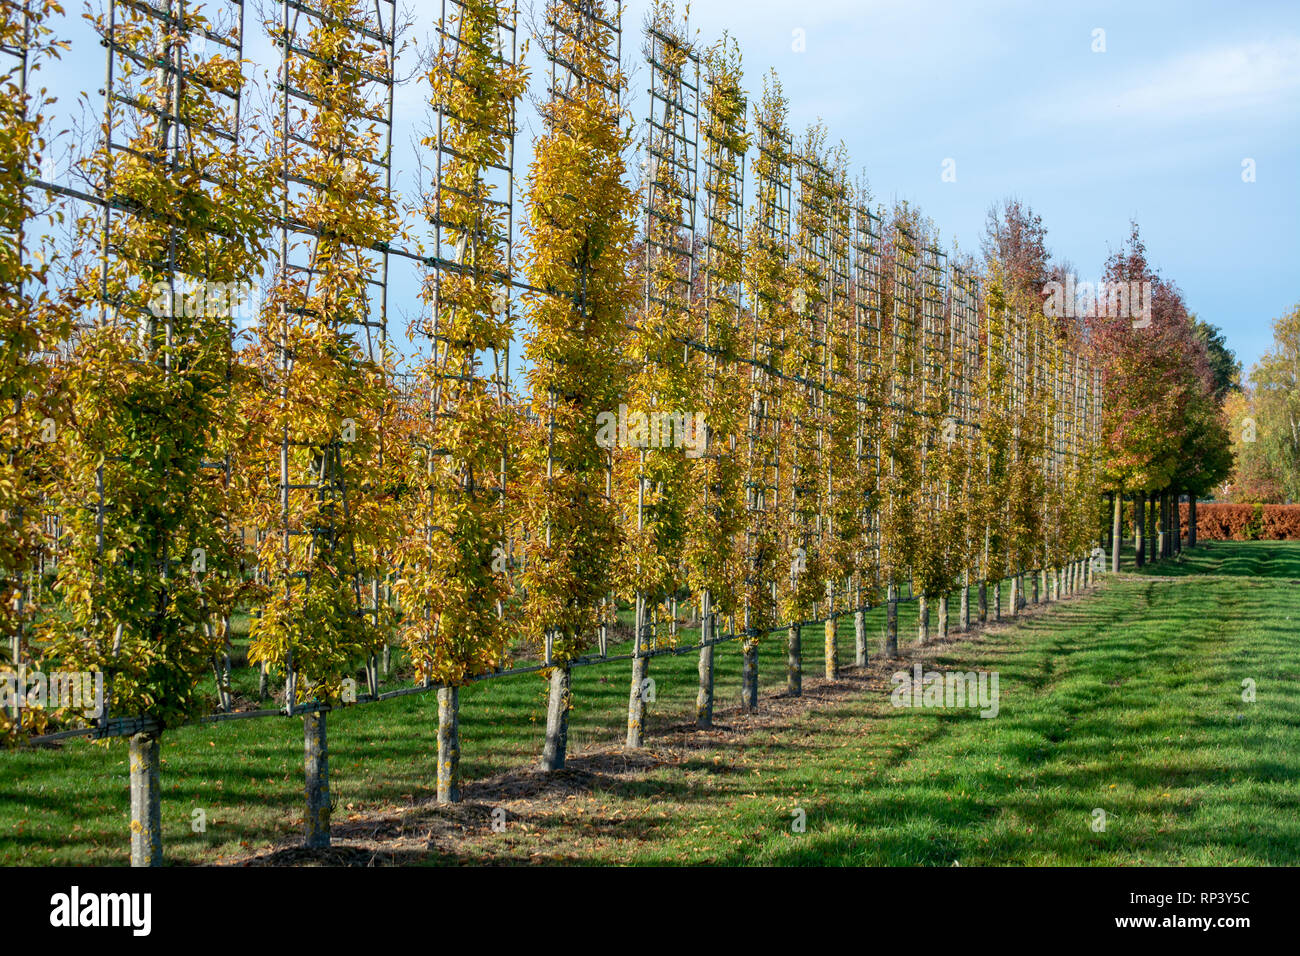 Dutch Nursery Of Exclusive Shaped Espaliered Decorative Trees